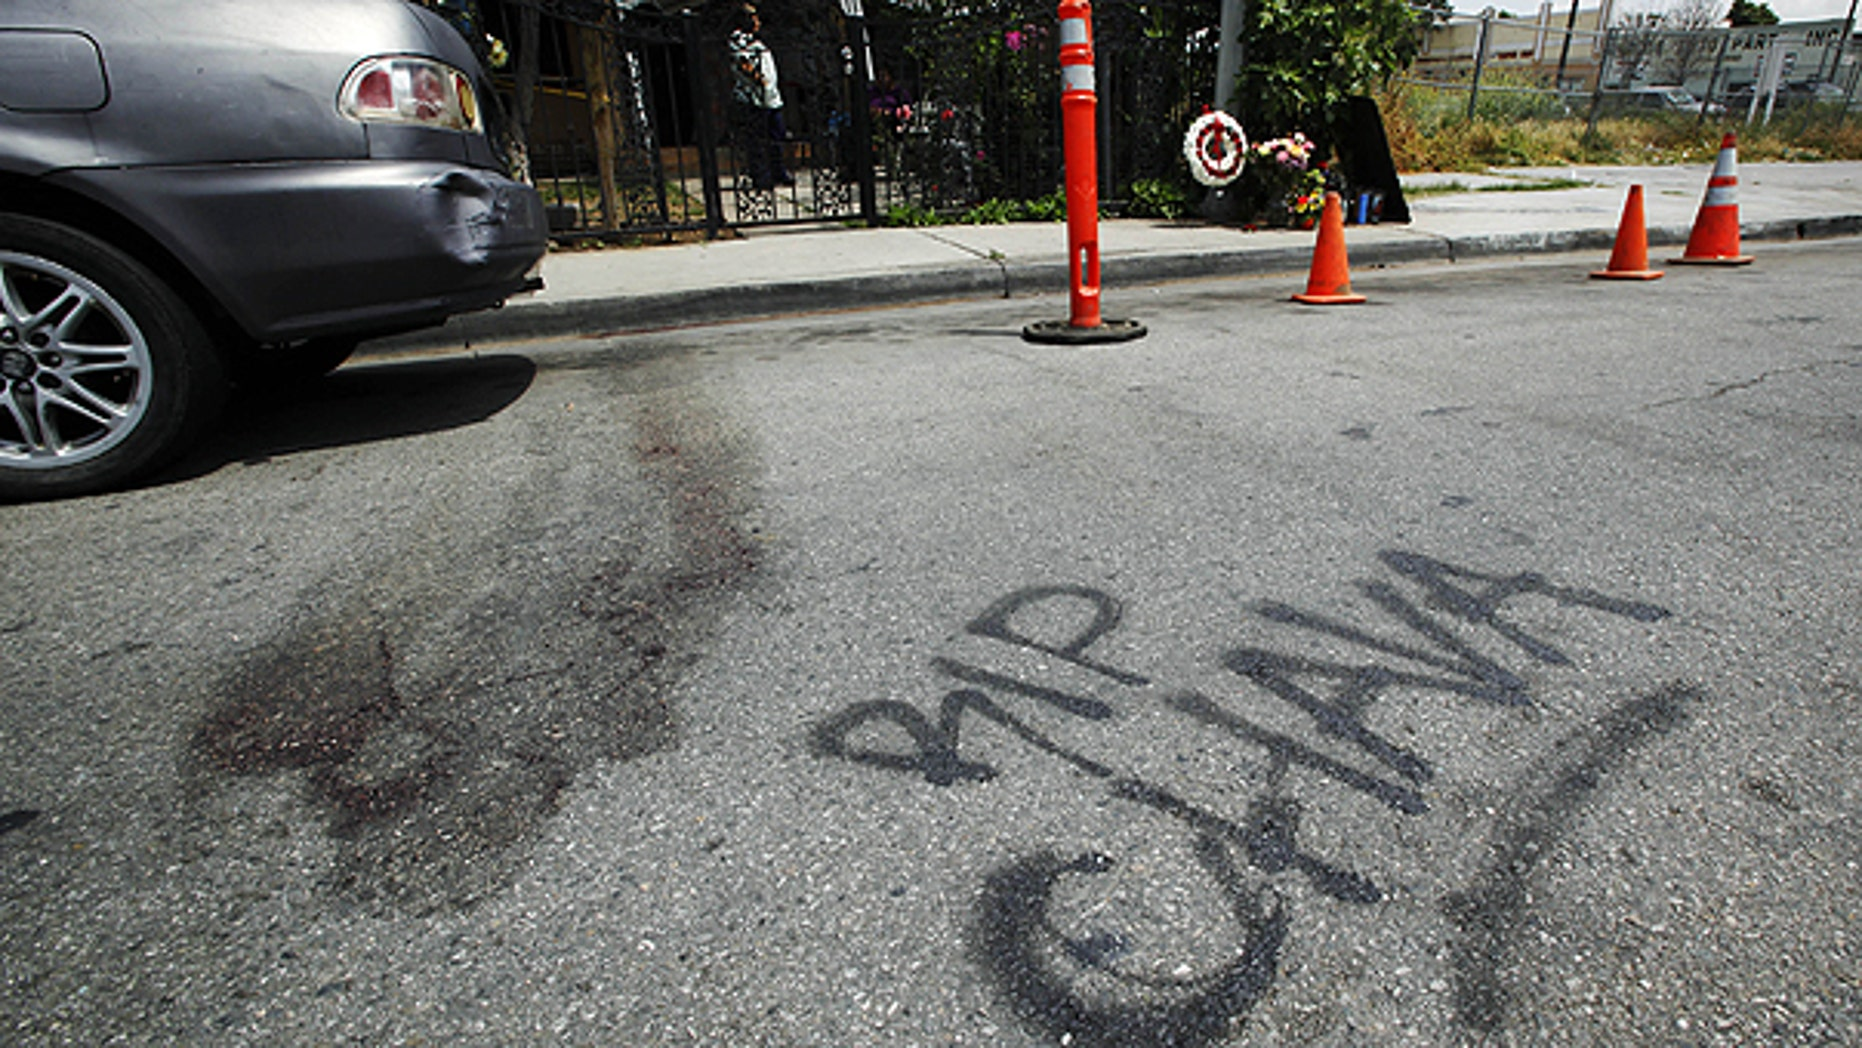 May 8: Blood stains the pavement, along with a painted 'RIP Chava' memorial and one on the sidewalk, in the street at the scene where a man shot and killed his girlfriend and two 5-year-old twins, before turning the gun on himself in a murder-suicide inside an SUV that was witnessed by three other children.